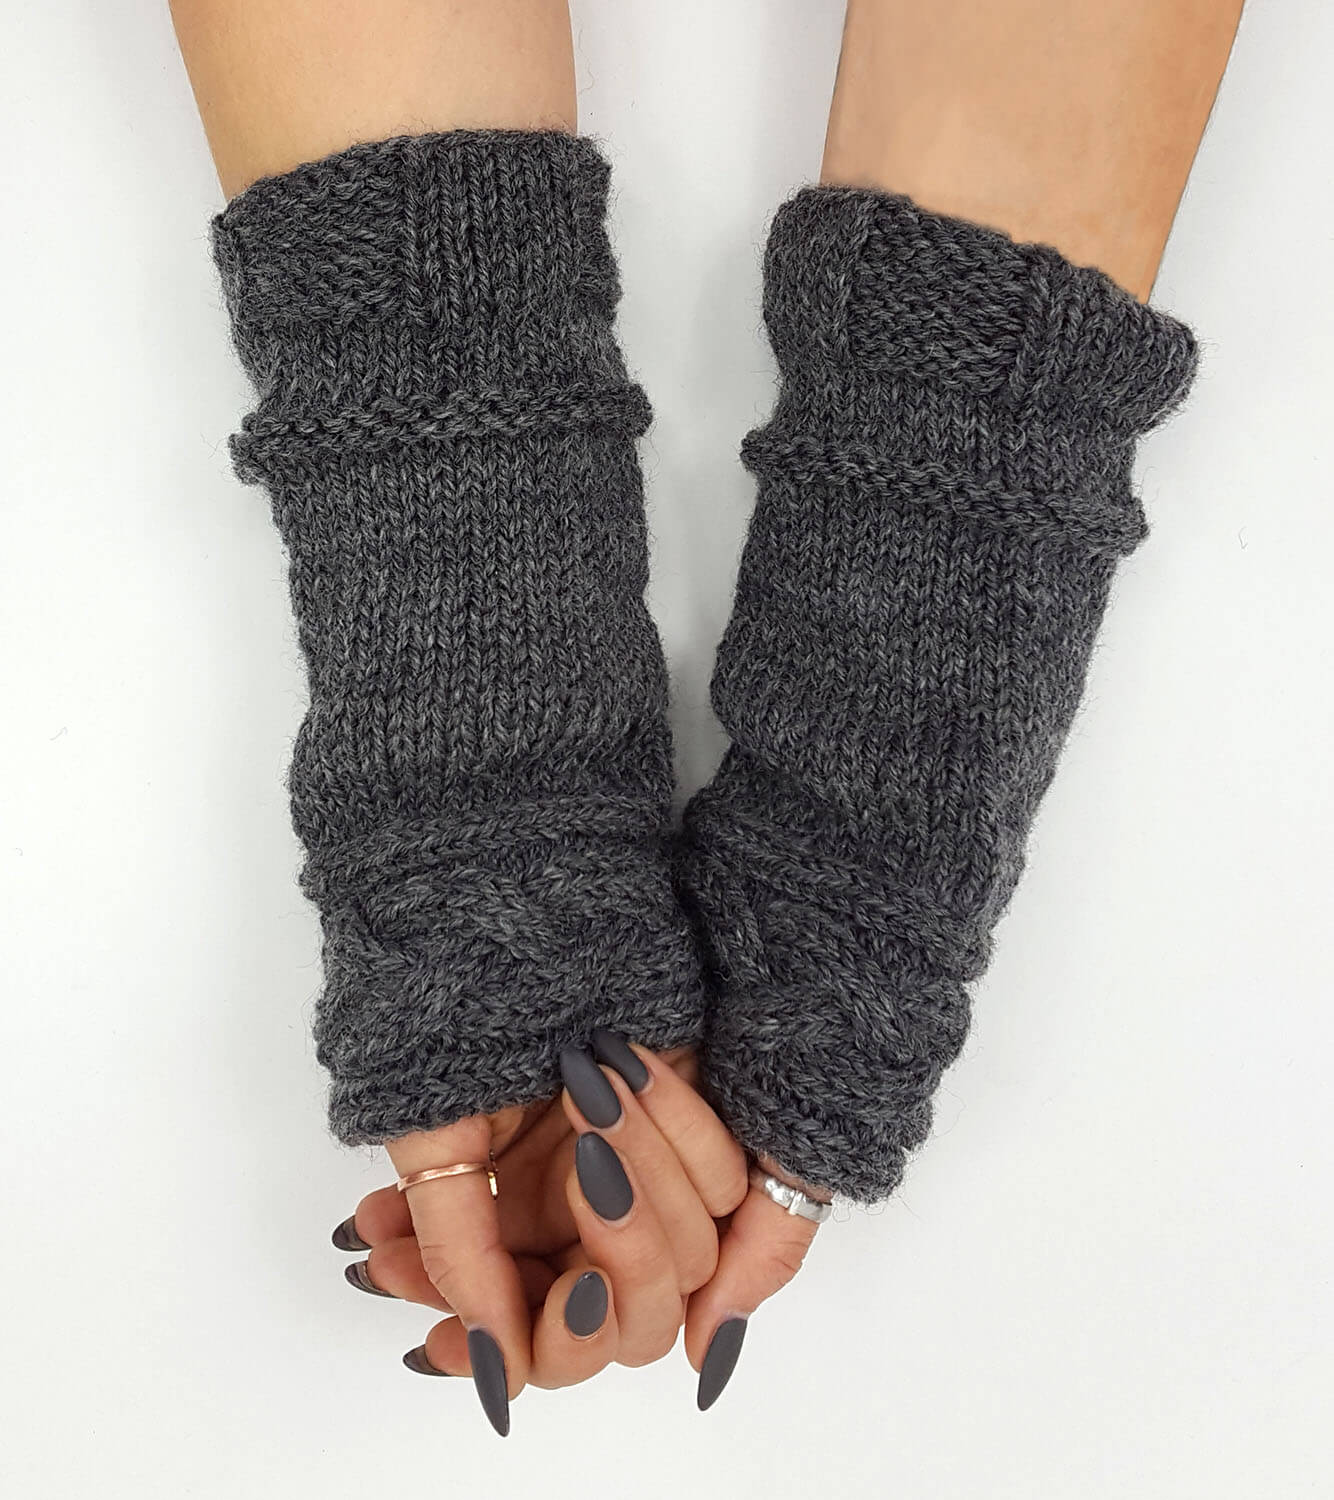 "These 100% wool wrist warmers are lovingly hand-knit in the USA. Inspired by the arm cuffs that Claire wears in OUTLANDER: The series. Wear it for your love of OUTLANDER or just for warmth and style. Measures approximately 4.5"" x 9"""